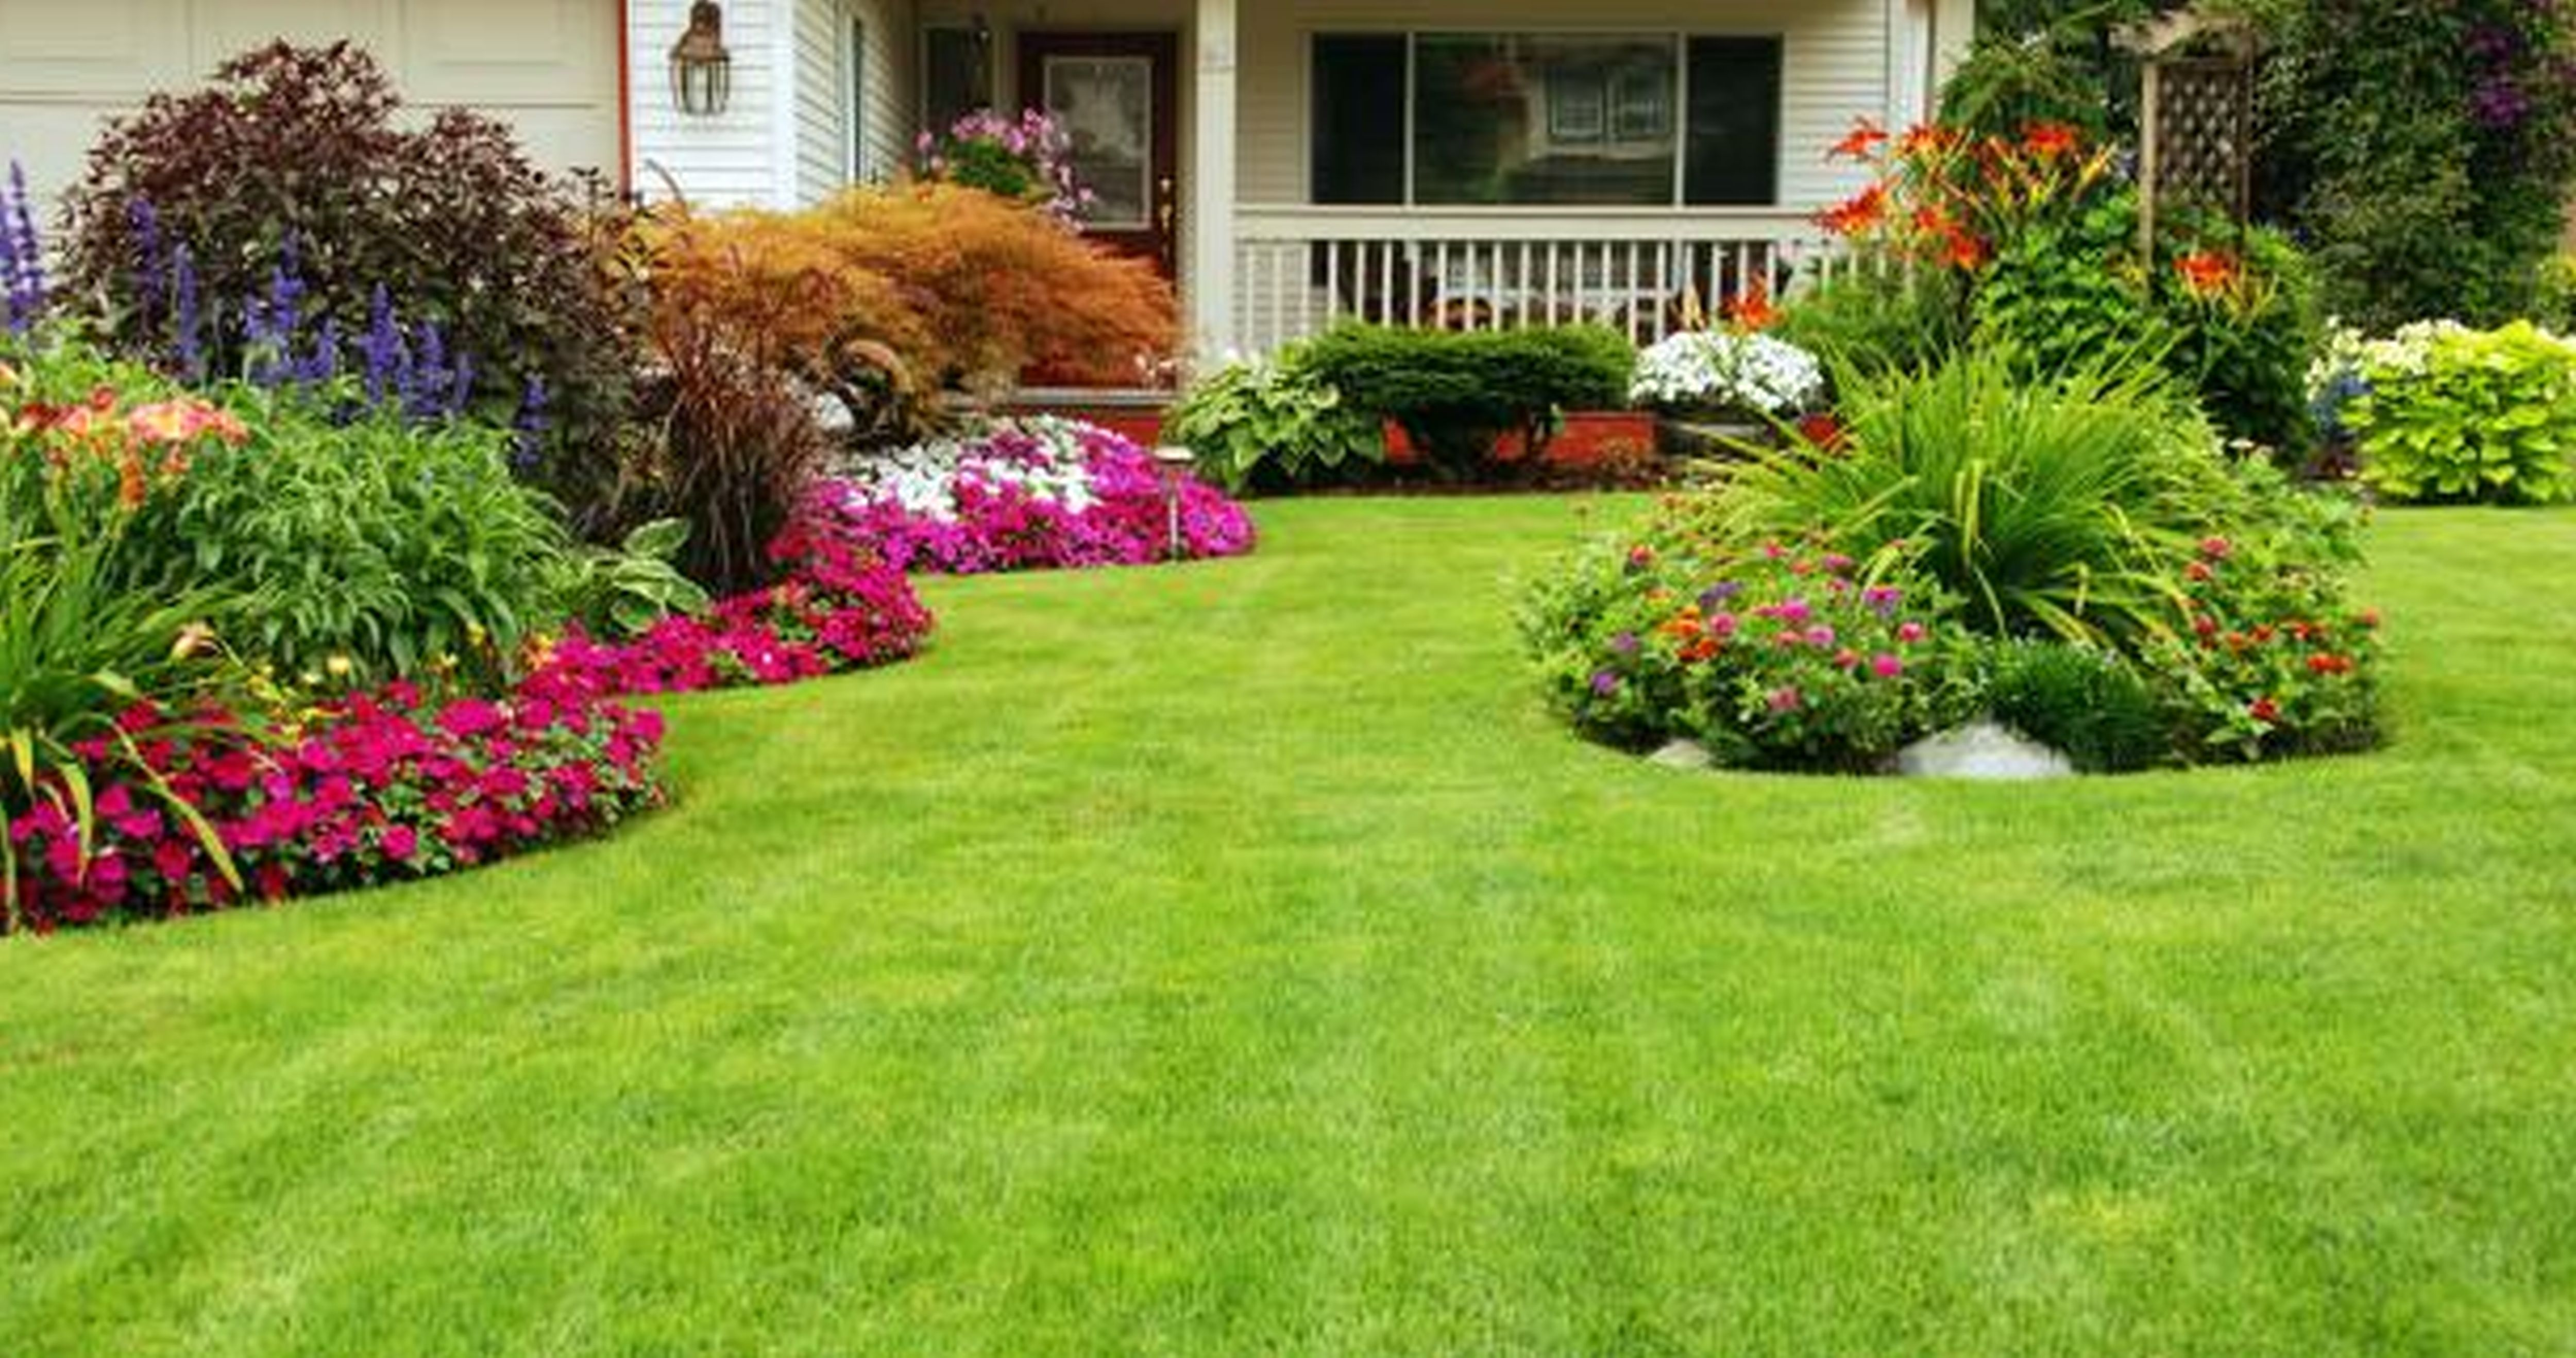 images of grass landscaping patiofurn home design ideas